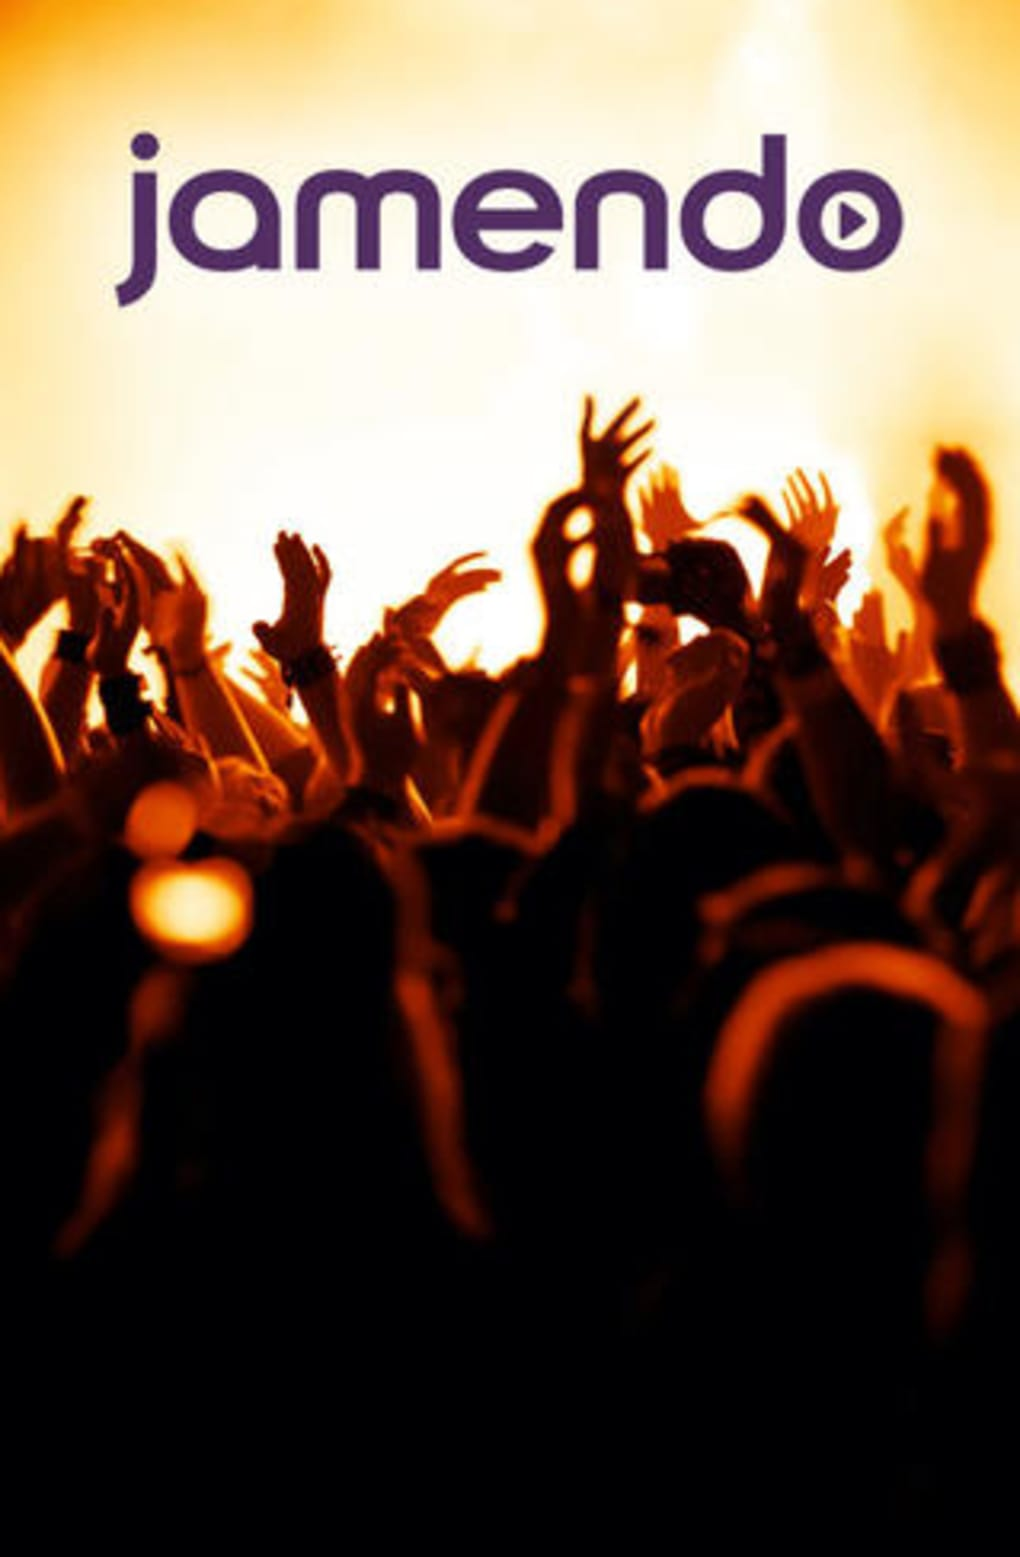 Jamendo for iPhone - Download